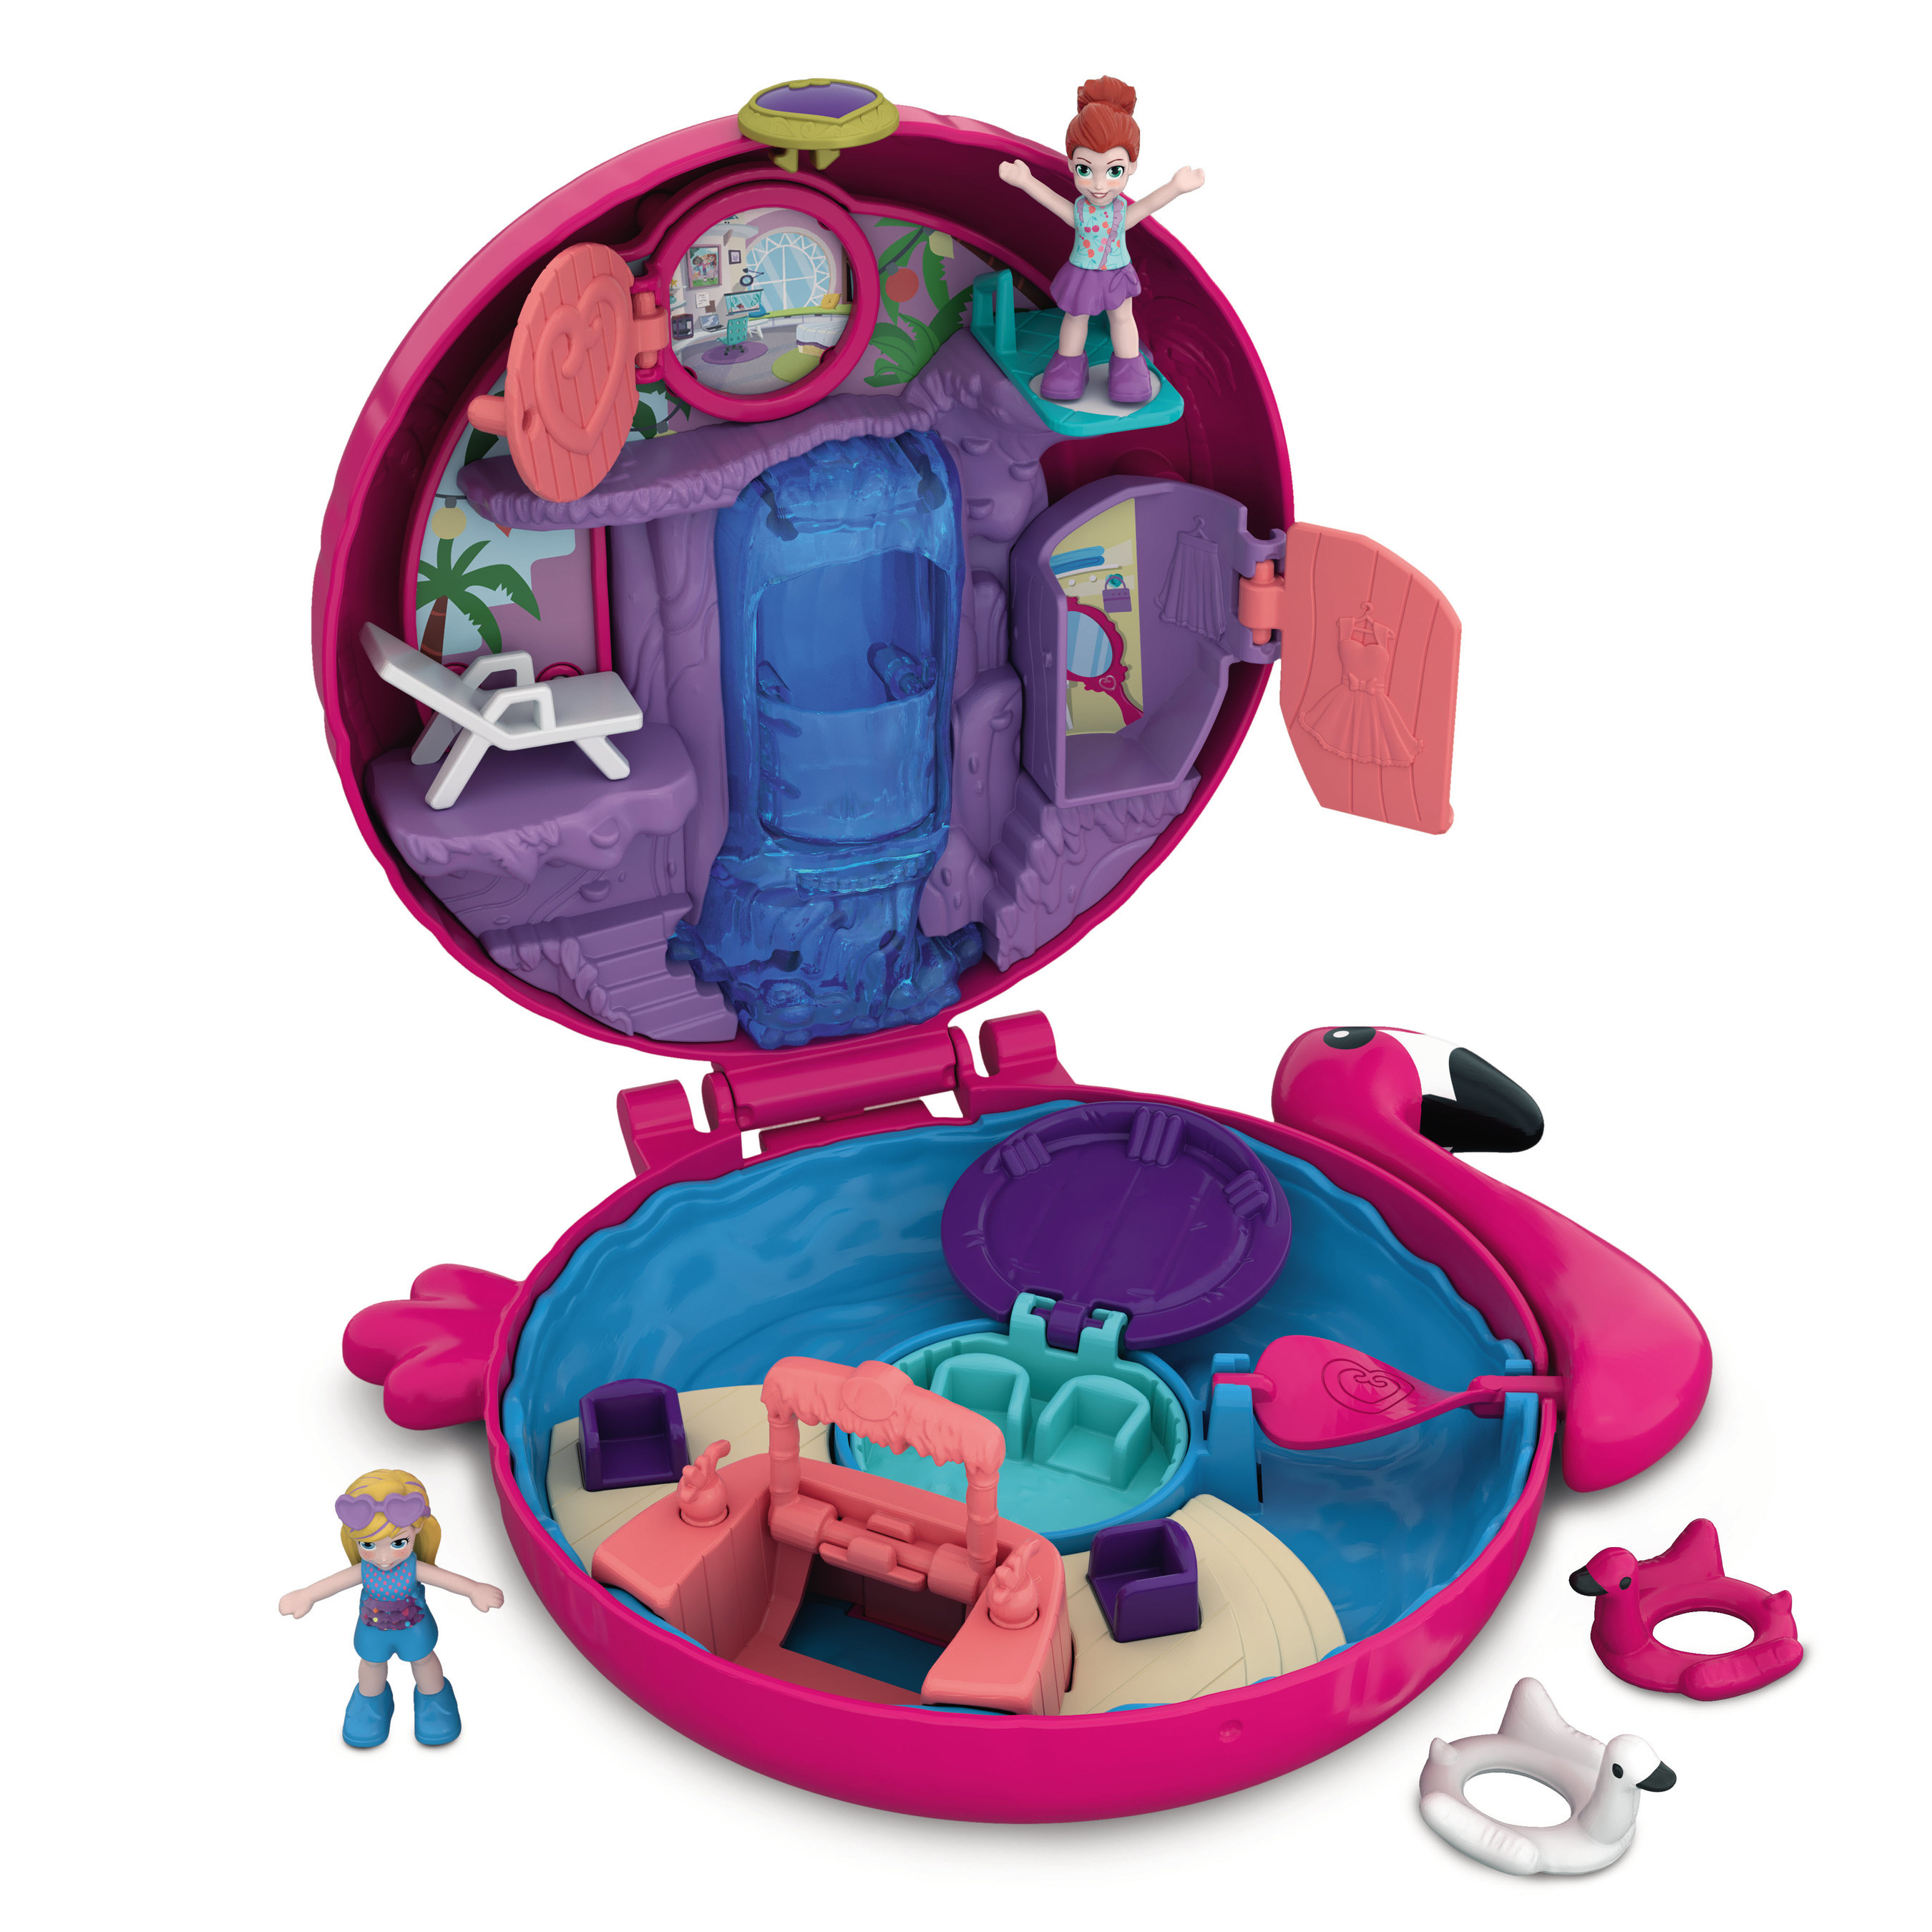 POLLY POCKET Tiny Places Camping World COMPACT PLAY SET Micro Girls Toys Doll